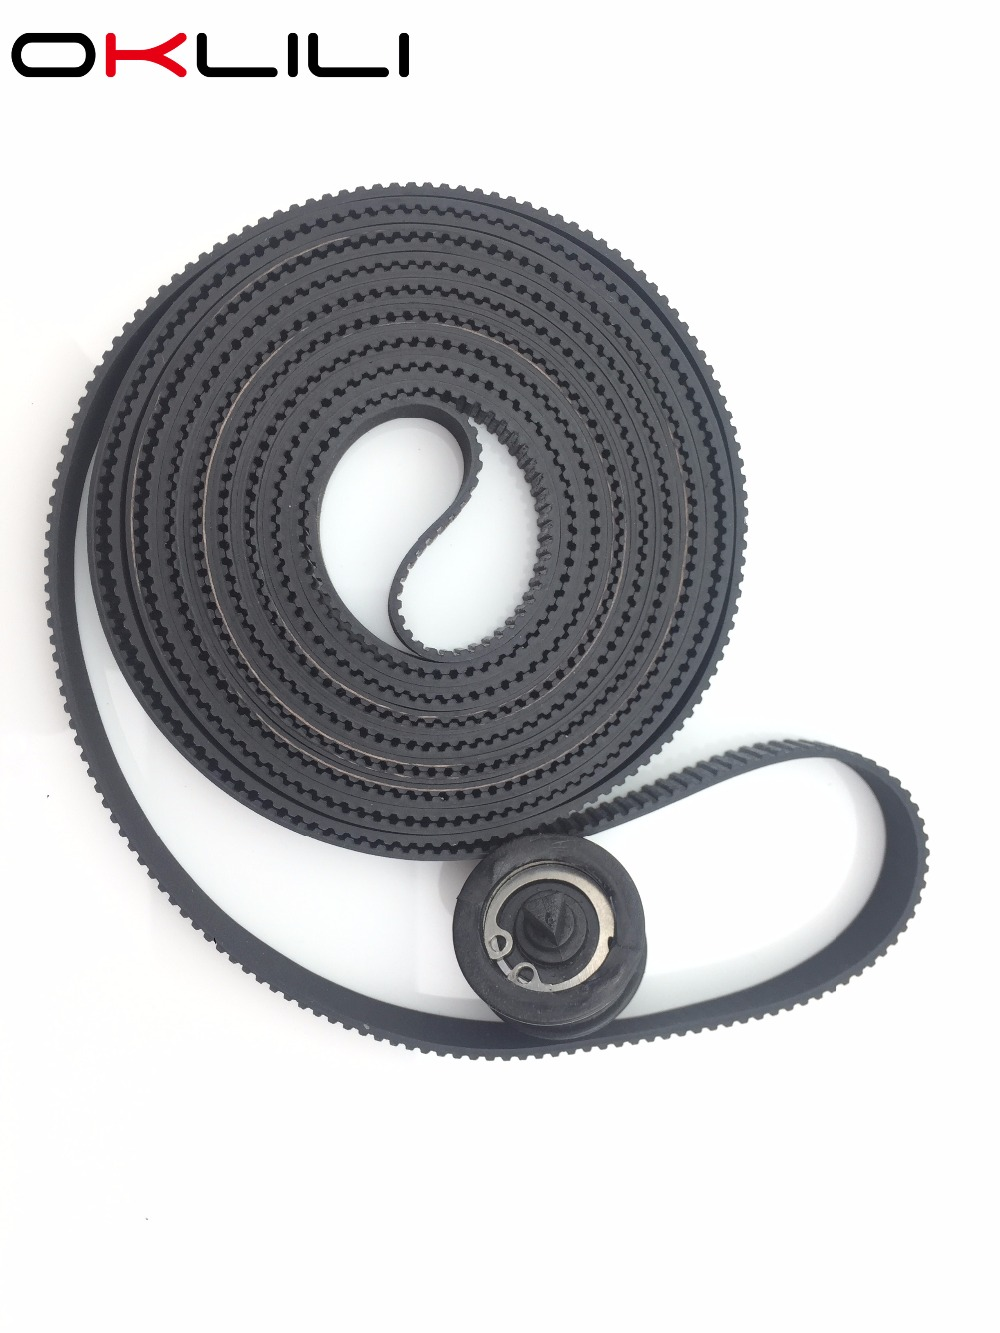 C7770-60014 Carriage Belt 42 B0 Size with Pulley for HP DesignJet 500 500PS 800 800PS 510 510PS 815 CC800PS 820 815MFP 820MFP vedrenne шоколад сироп 1 л